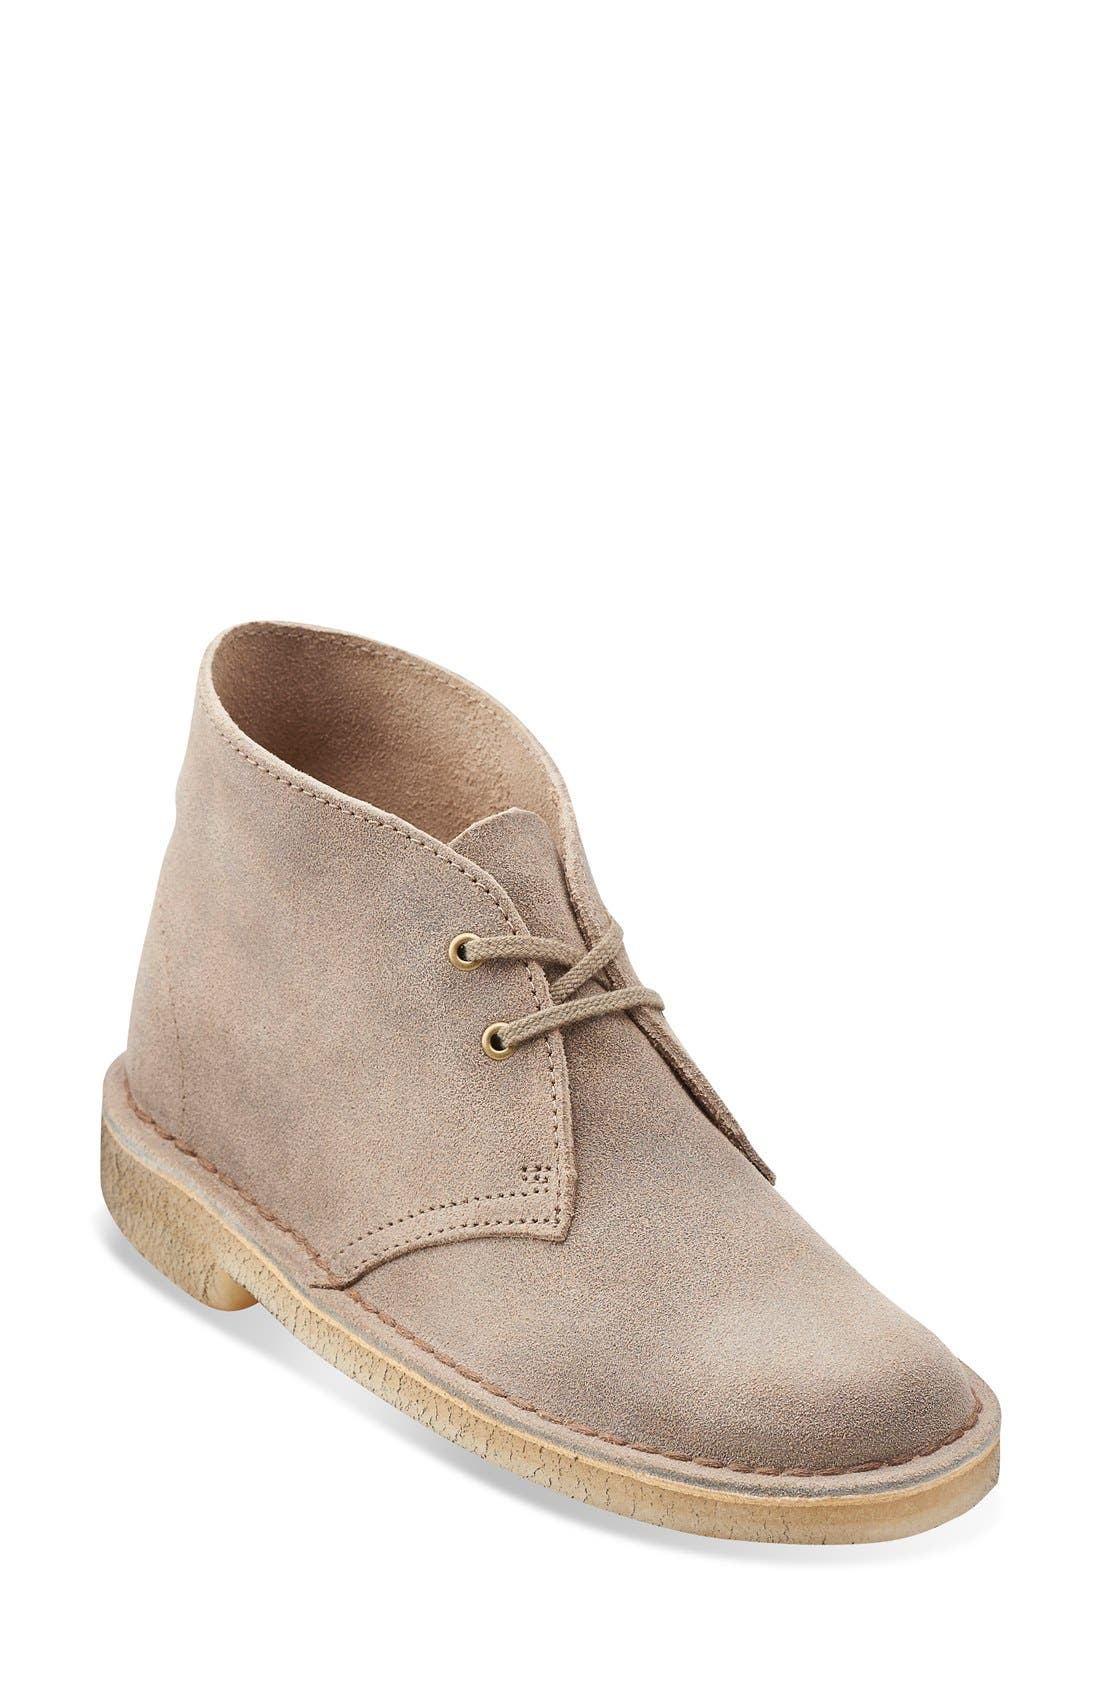 Desert Boot,                             Main thumbnail 1, color,                             TAUPE DISTRESSED SUEDE